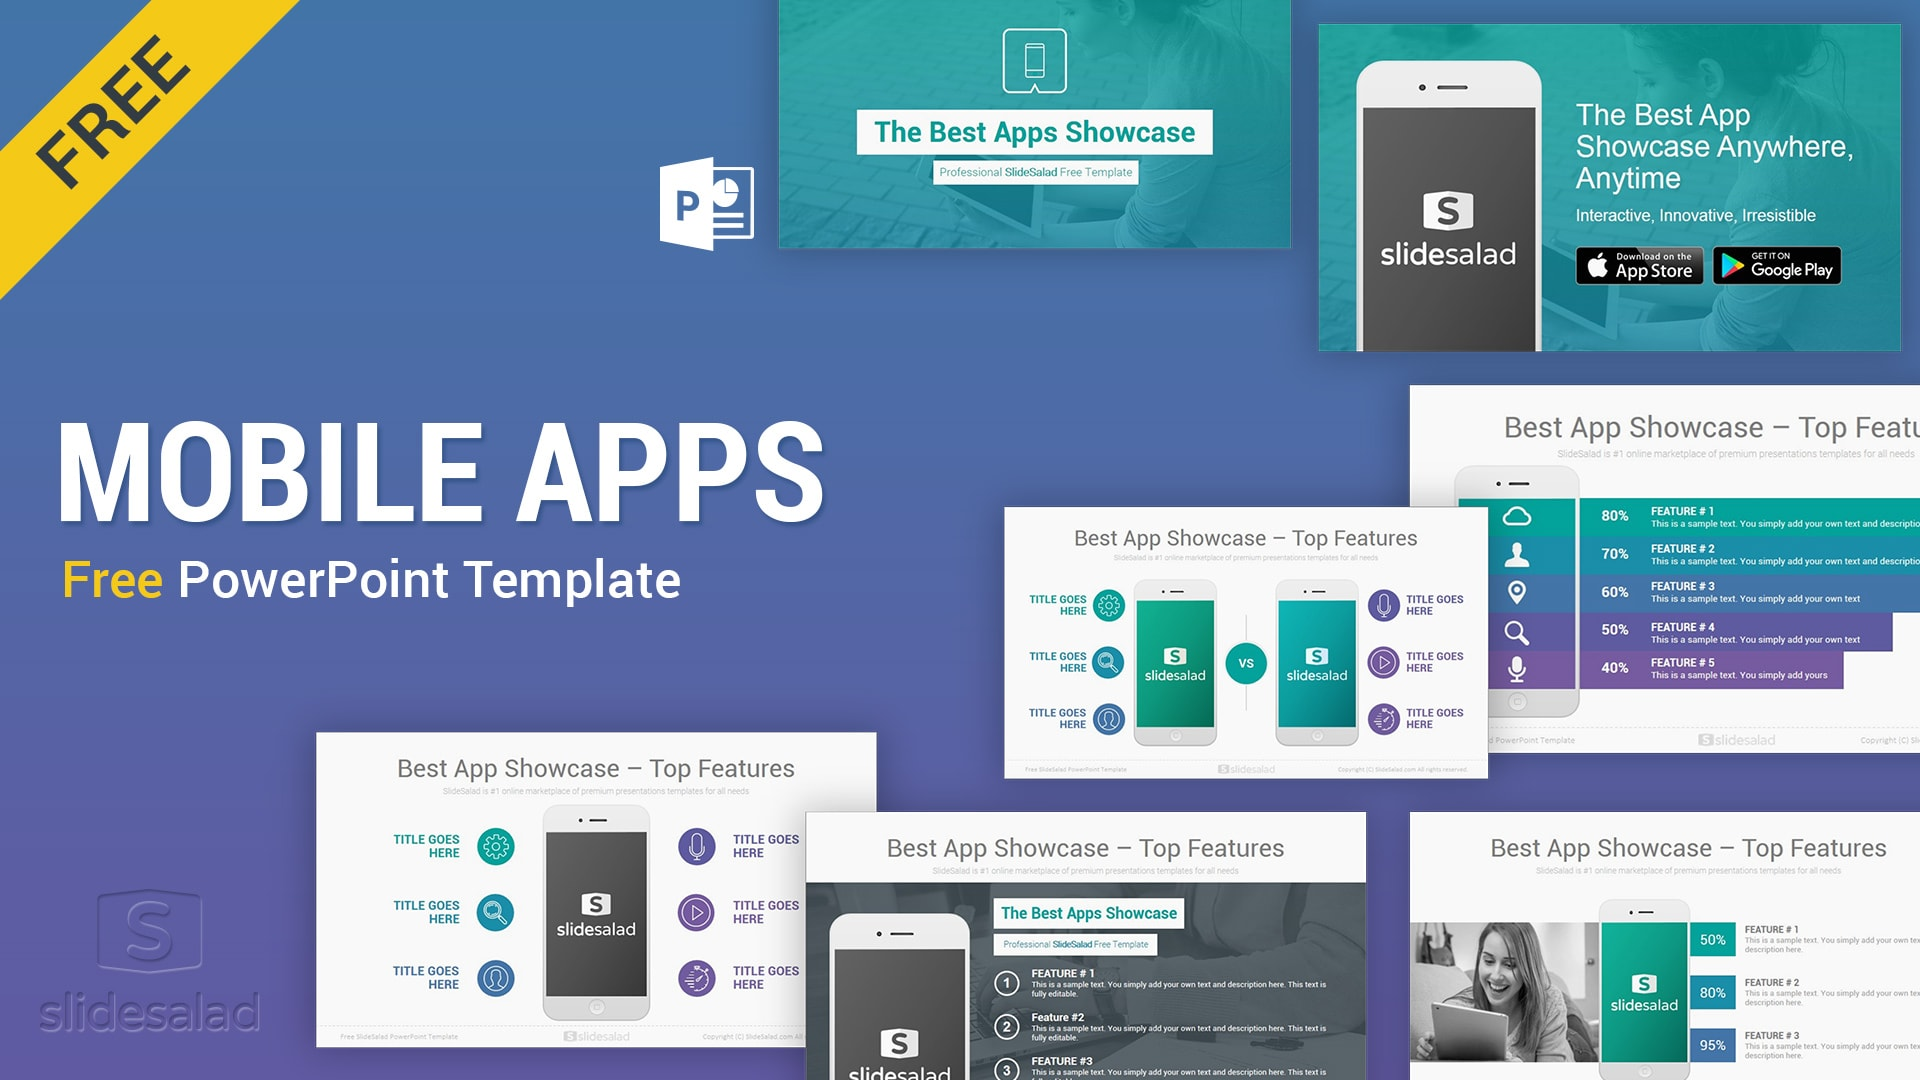 Free Mobile Apps PowerPoint Presentation Templates – Best Free PPT Template for App Development Presentations and Proposals